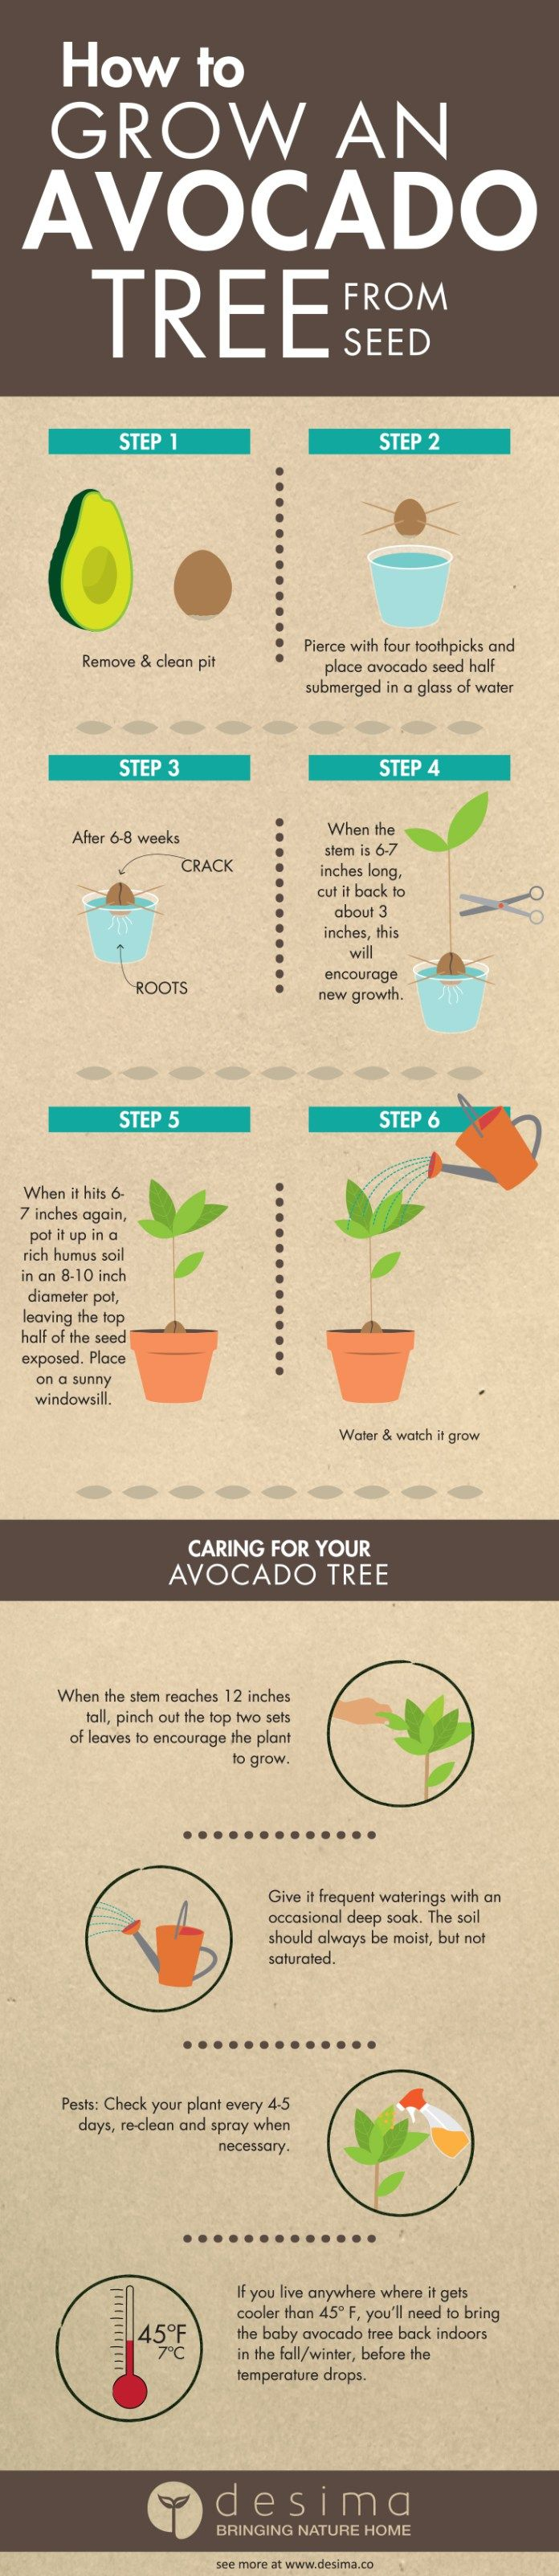 How to Grow an Avocado Tree from a Seed [Infographic] – Greener Ideal